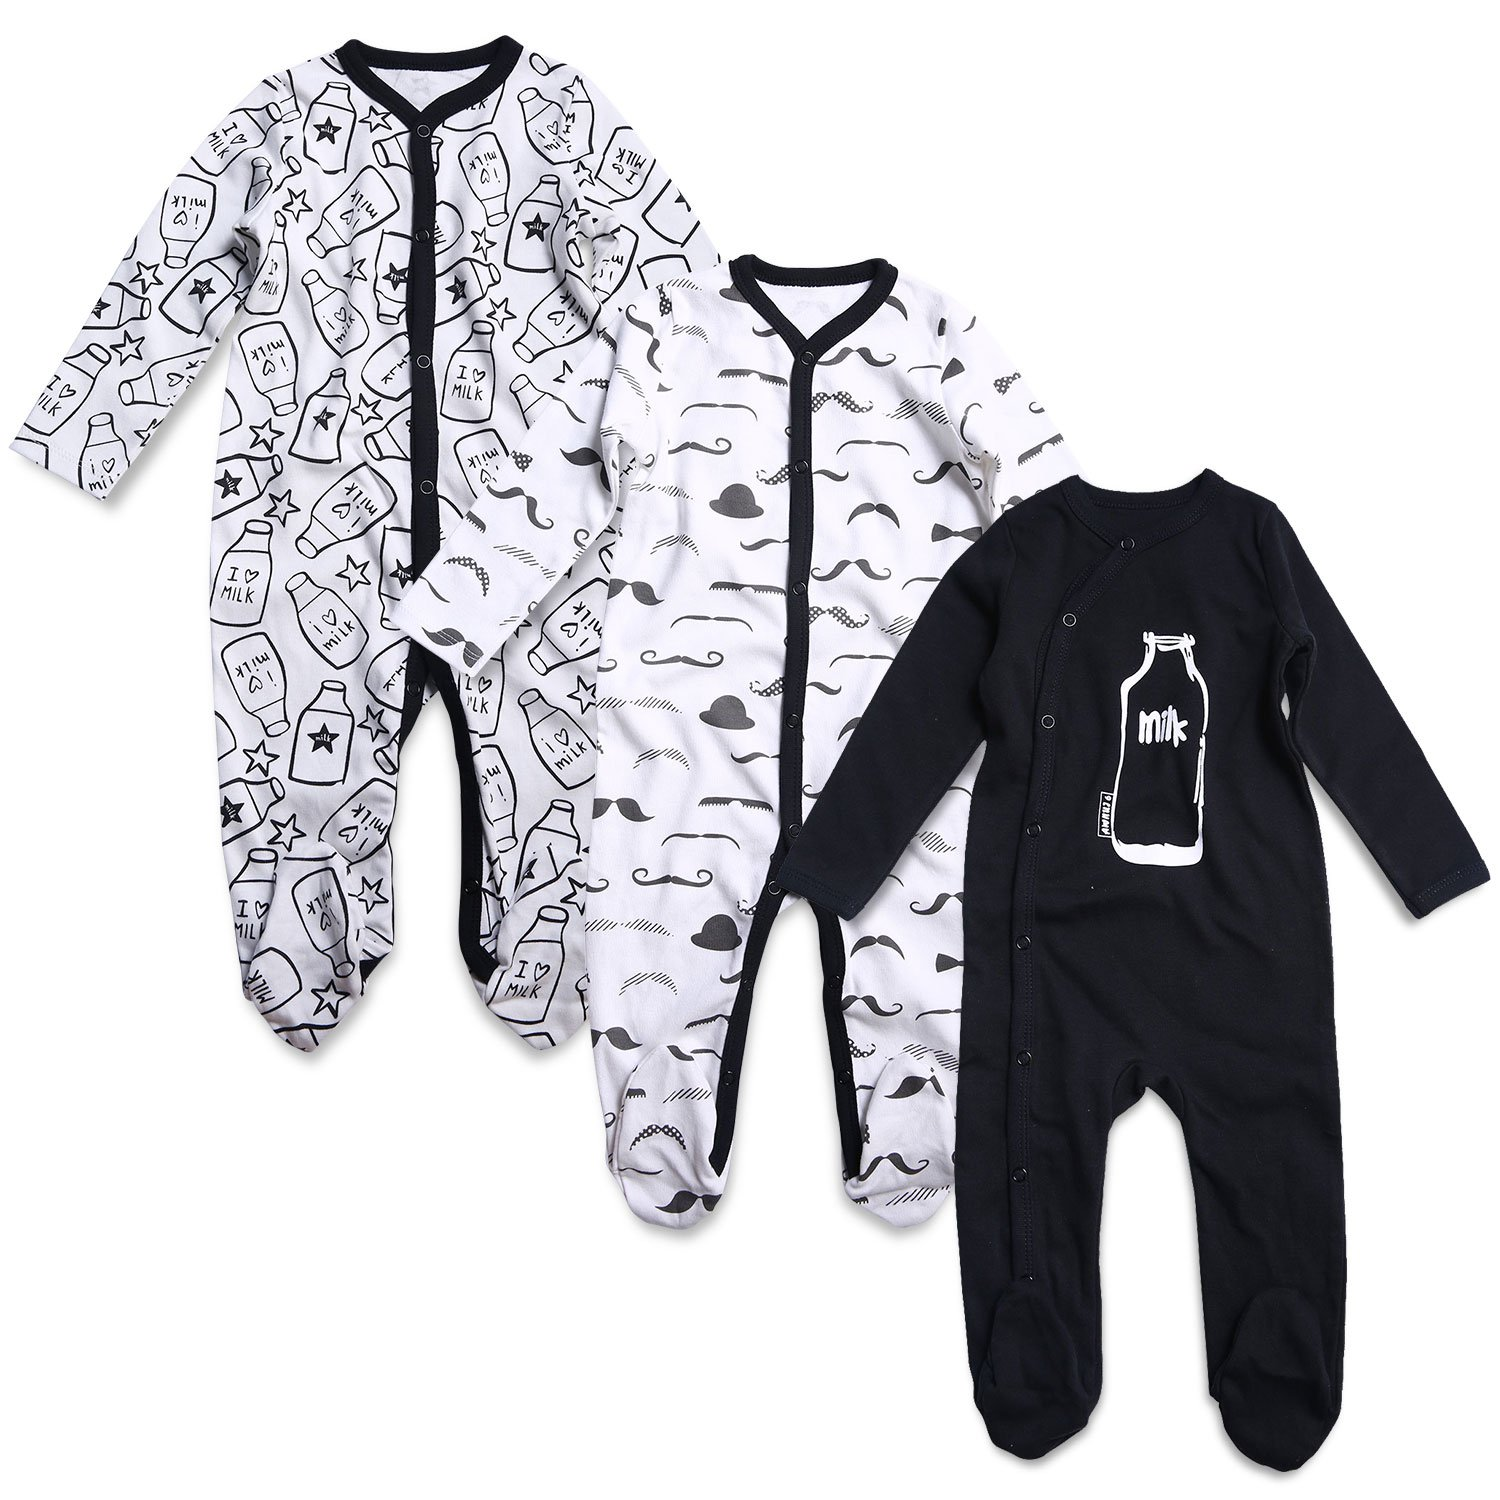 OPAWO Baby Boys' Footed Sleeper Pajamas 3 Pack